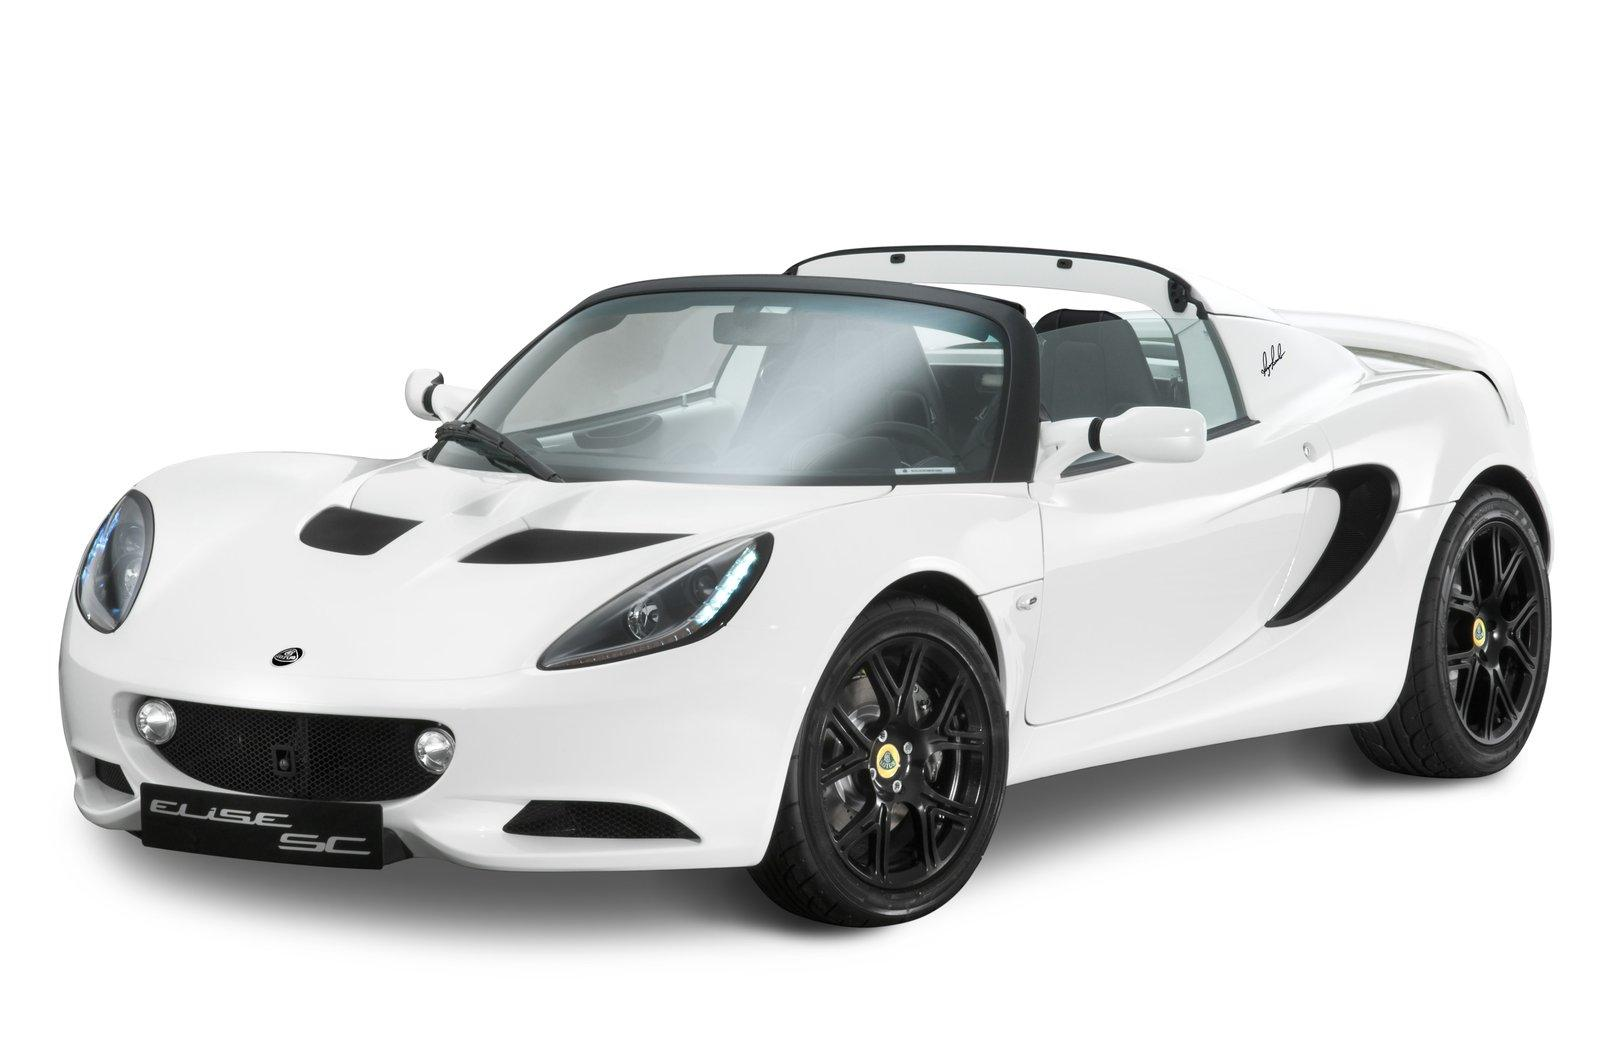 LOTUS ELISE SC RGB SPECIAL EDITION FRONT ANGLE 7